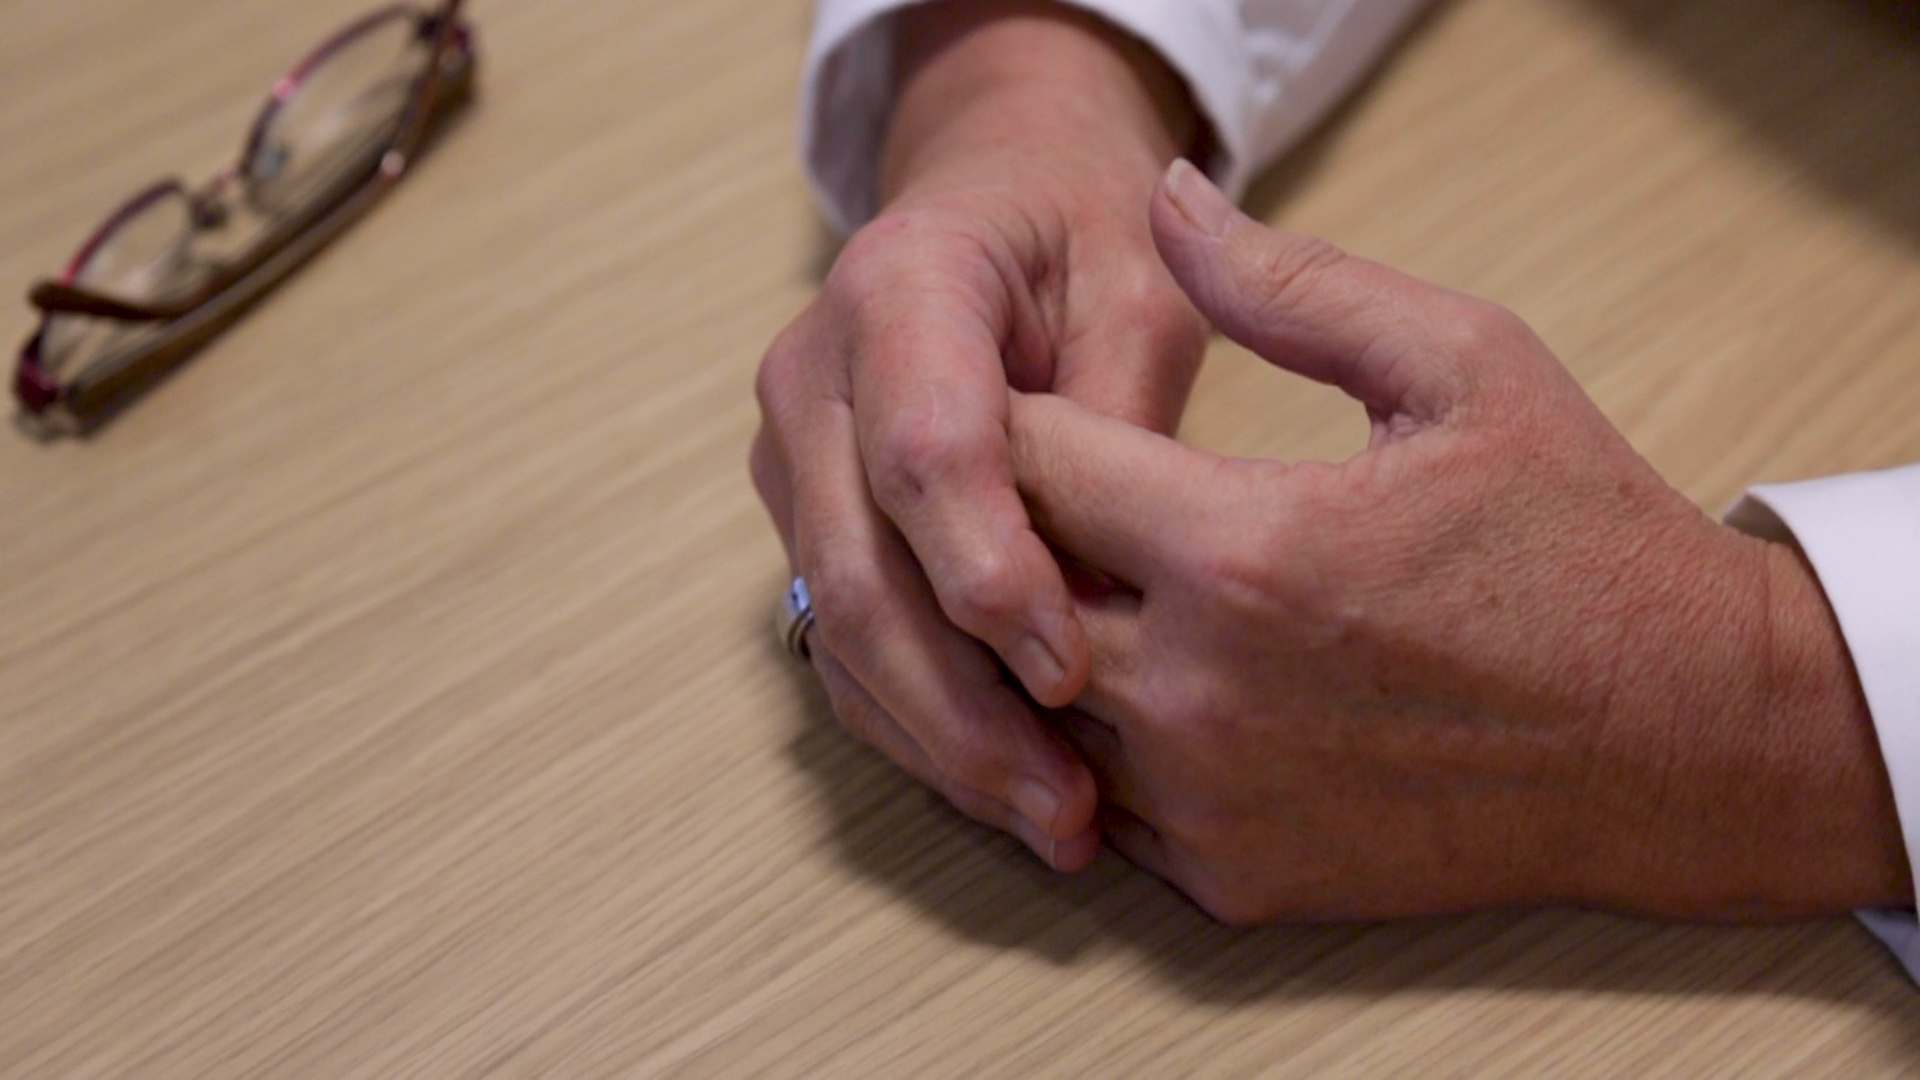 Anxious hands rest on a wood table